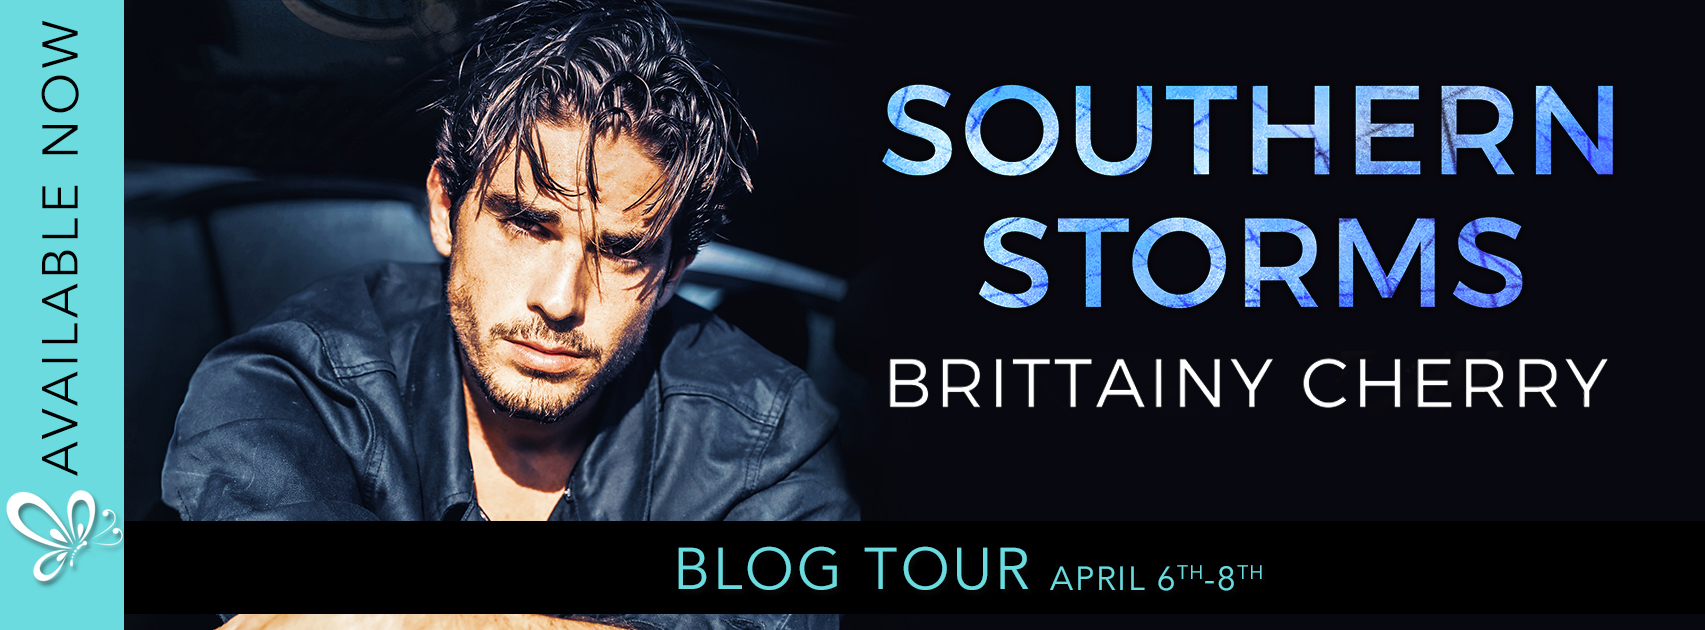 Blog Tour: Southern Storms by Brittainy Cherry